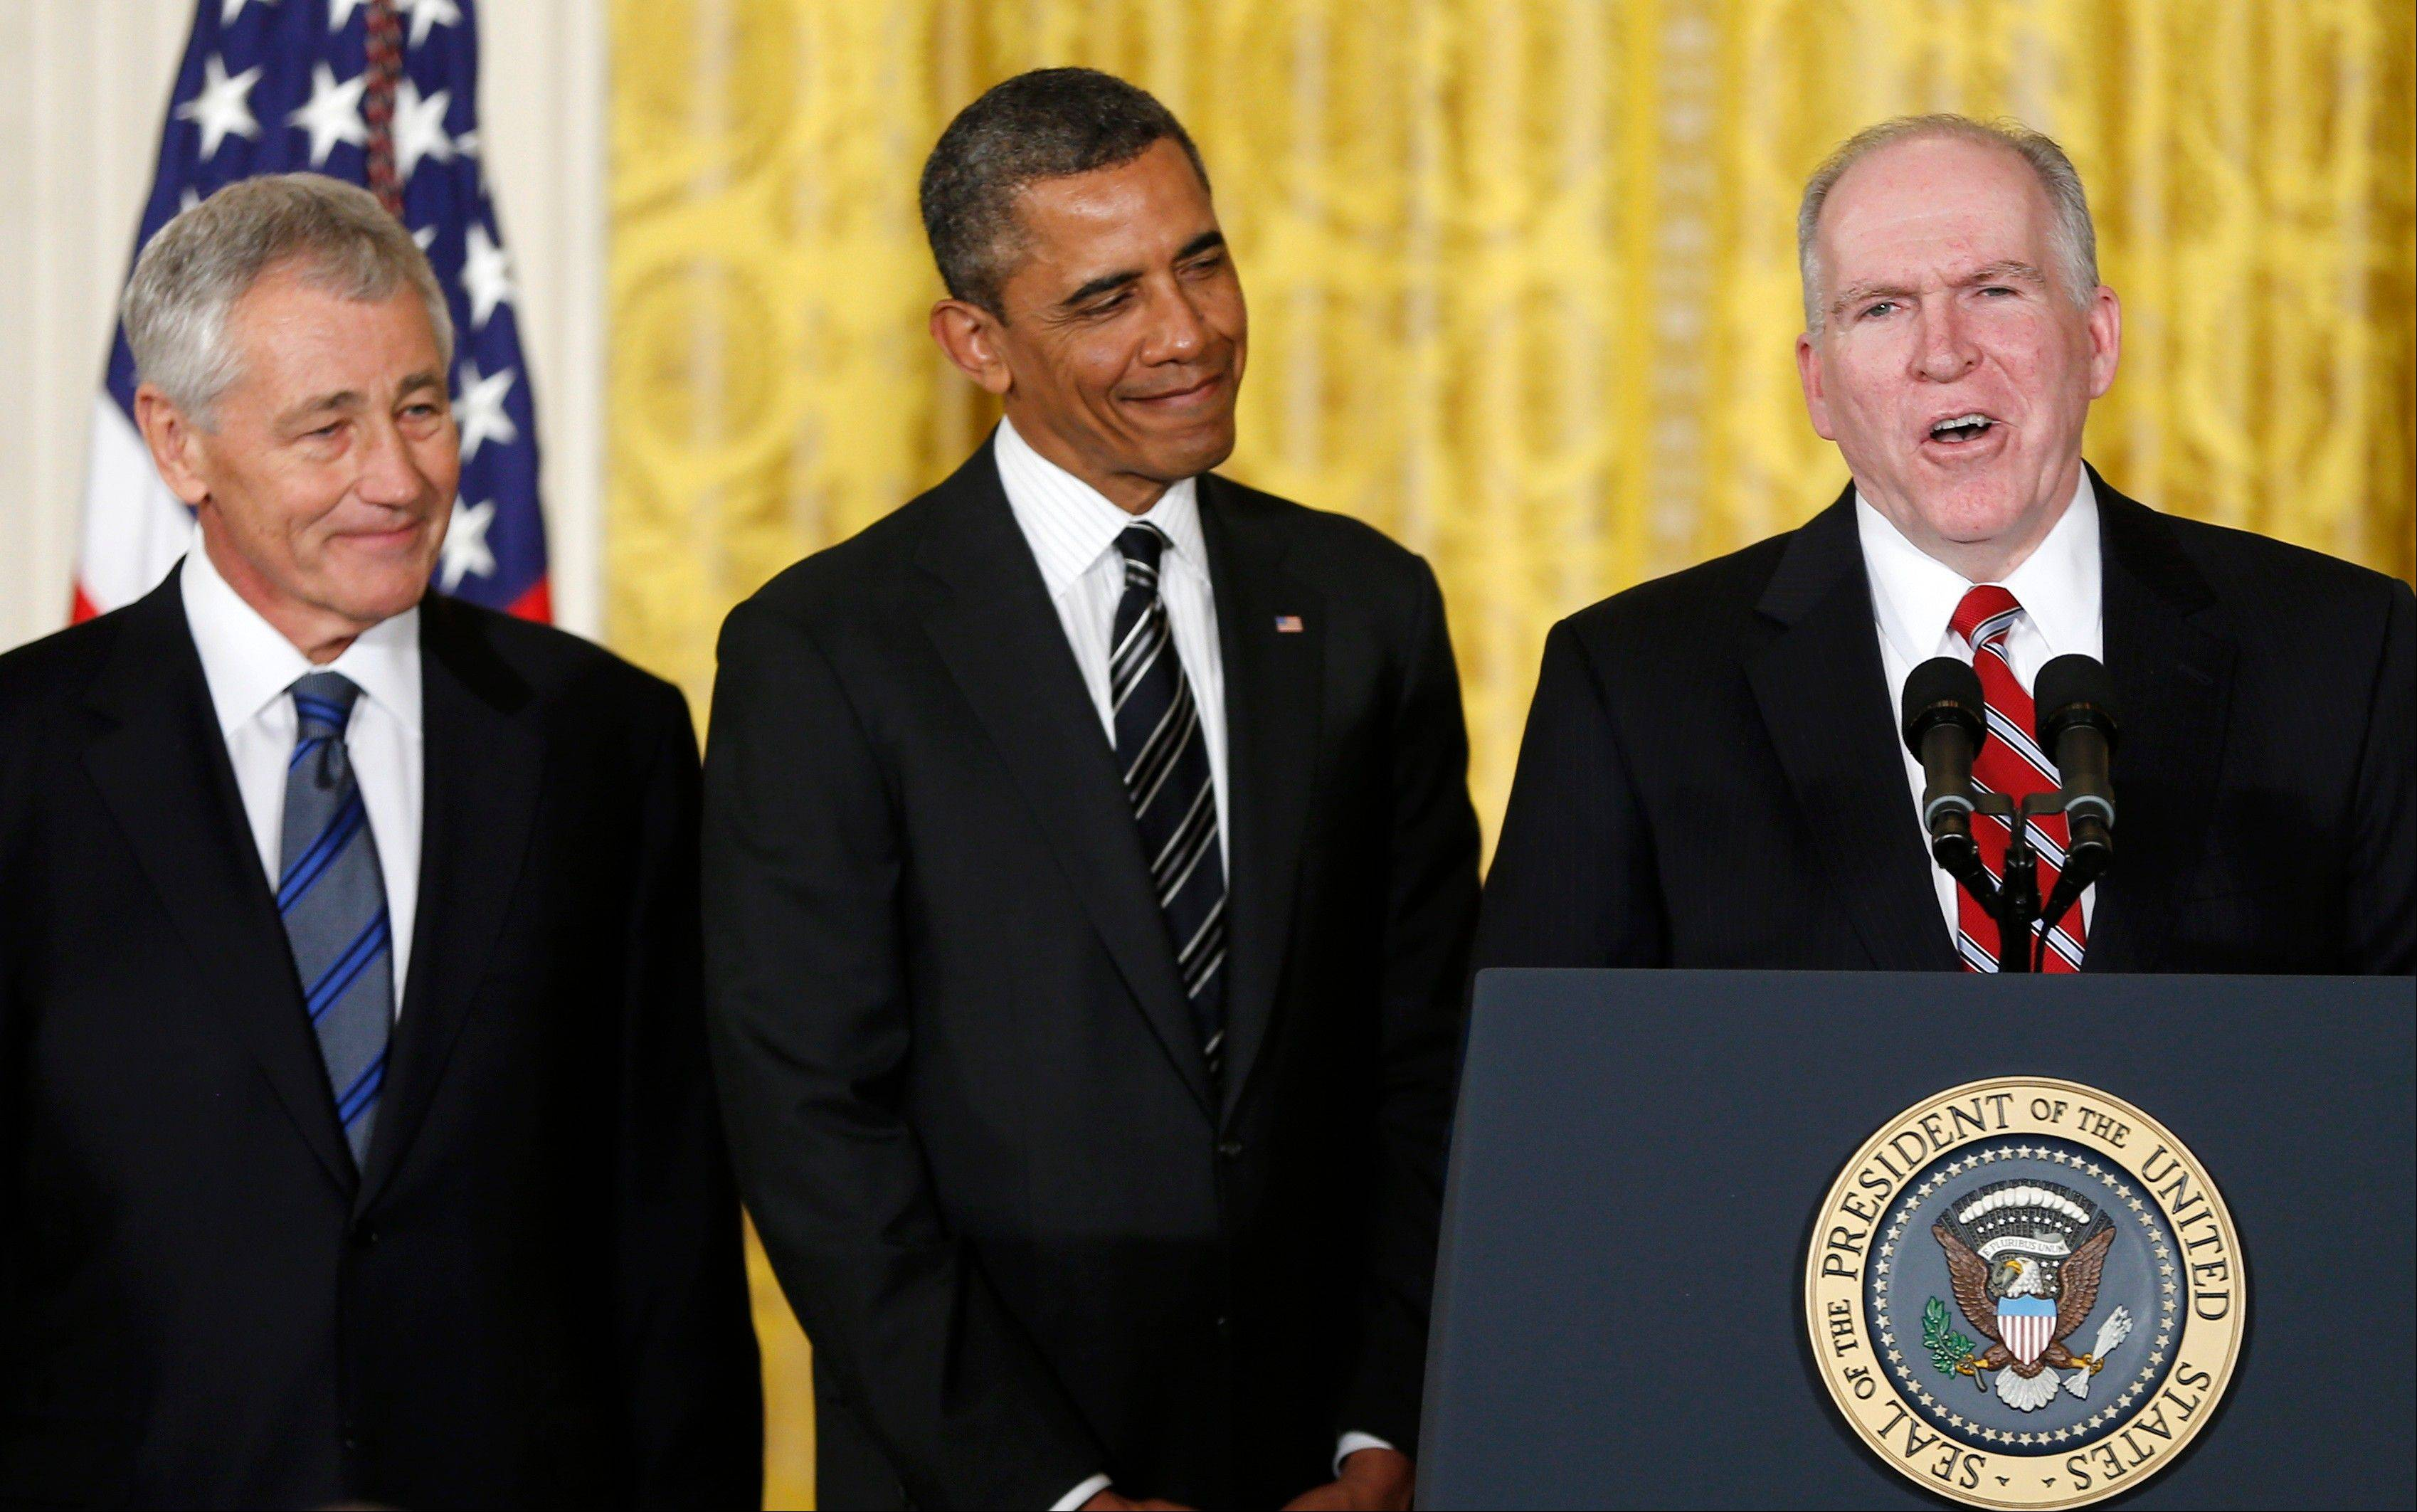 President Barack Obama and his choice for Defense Secretary, former Nebraska Sen. Chuck Hagel, left, listen as the president's choice for CIA Director, Deputy National Security Adviser for Homeland Security and Counterterrorism, John Brennan, right, speaks in the East Room of the White House in Washington, Monday, Jan. 7, 2013.